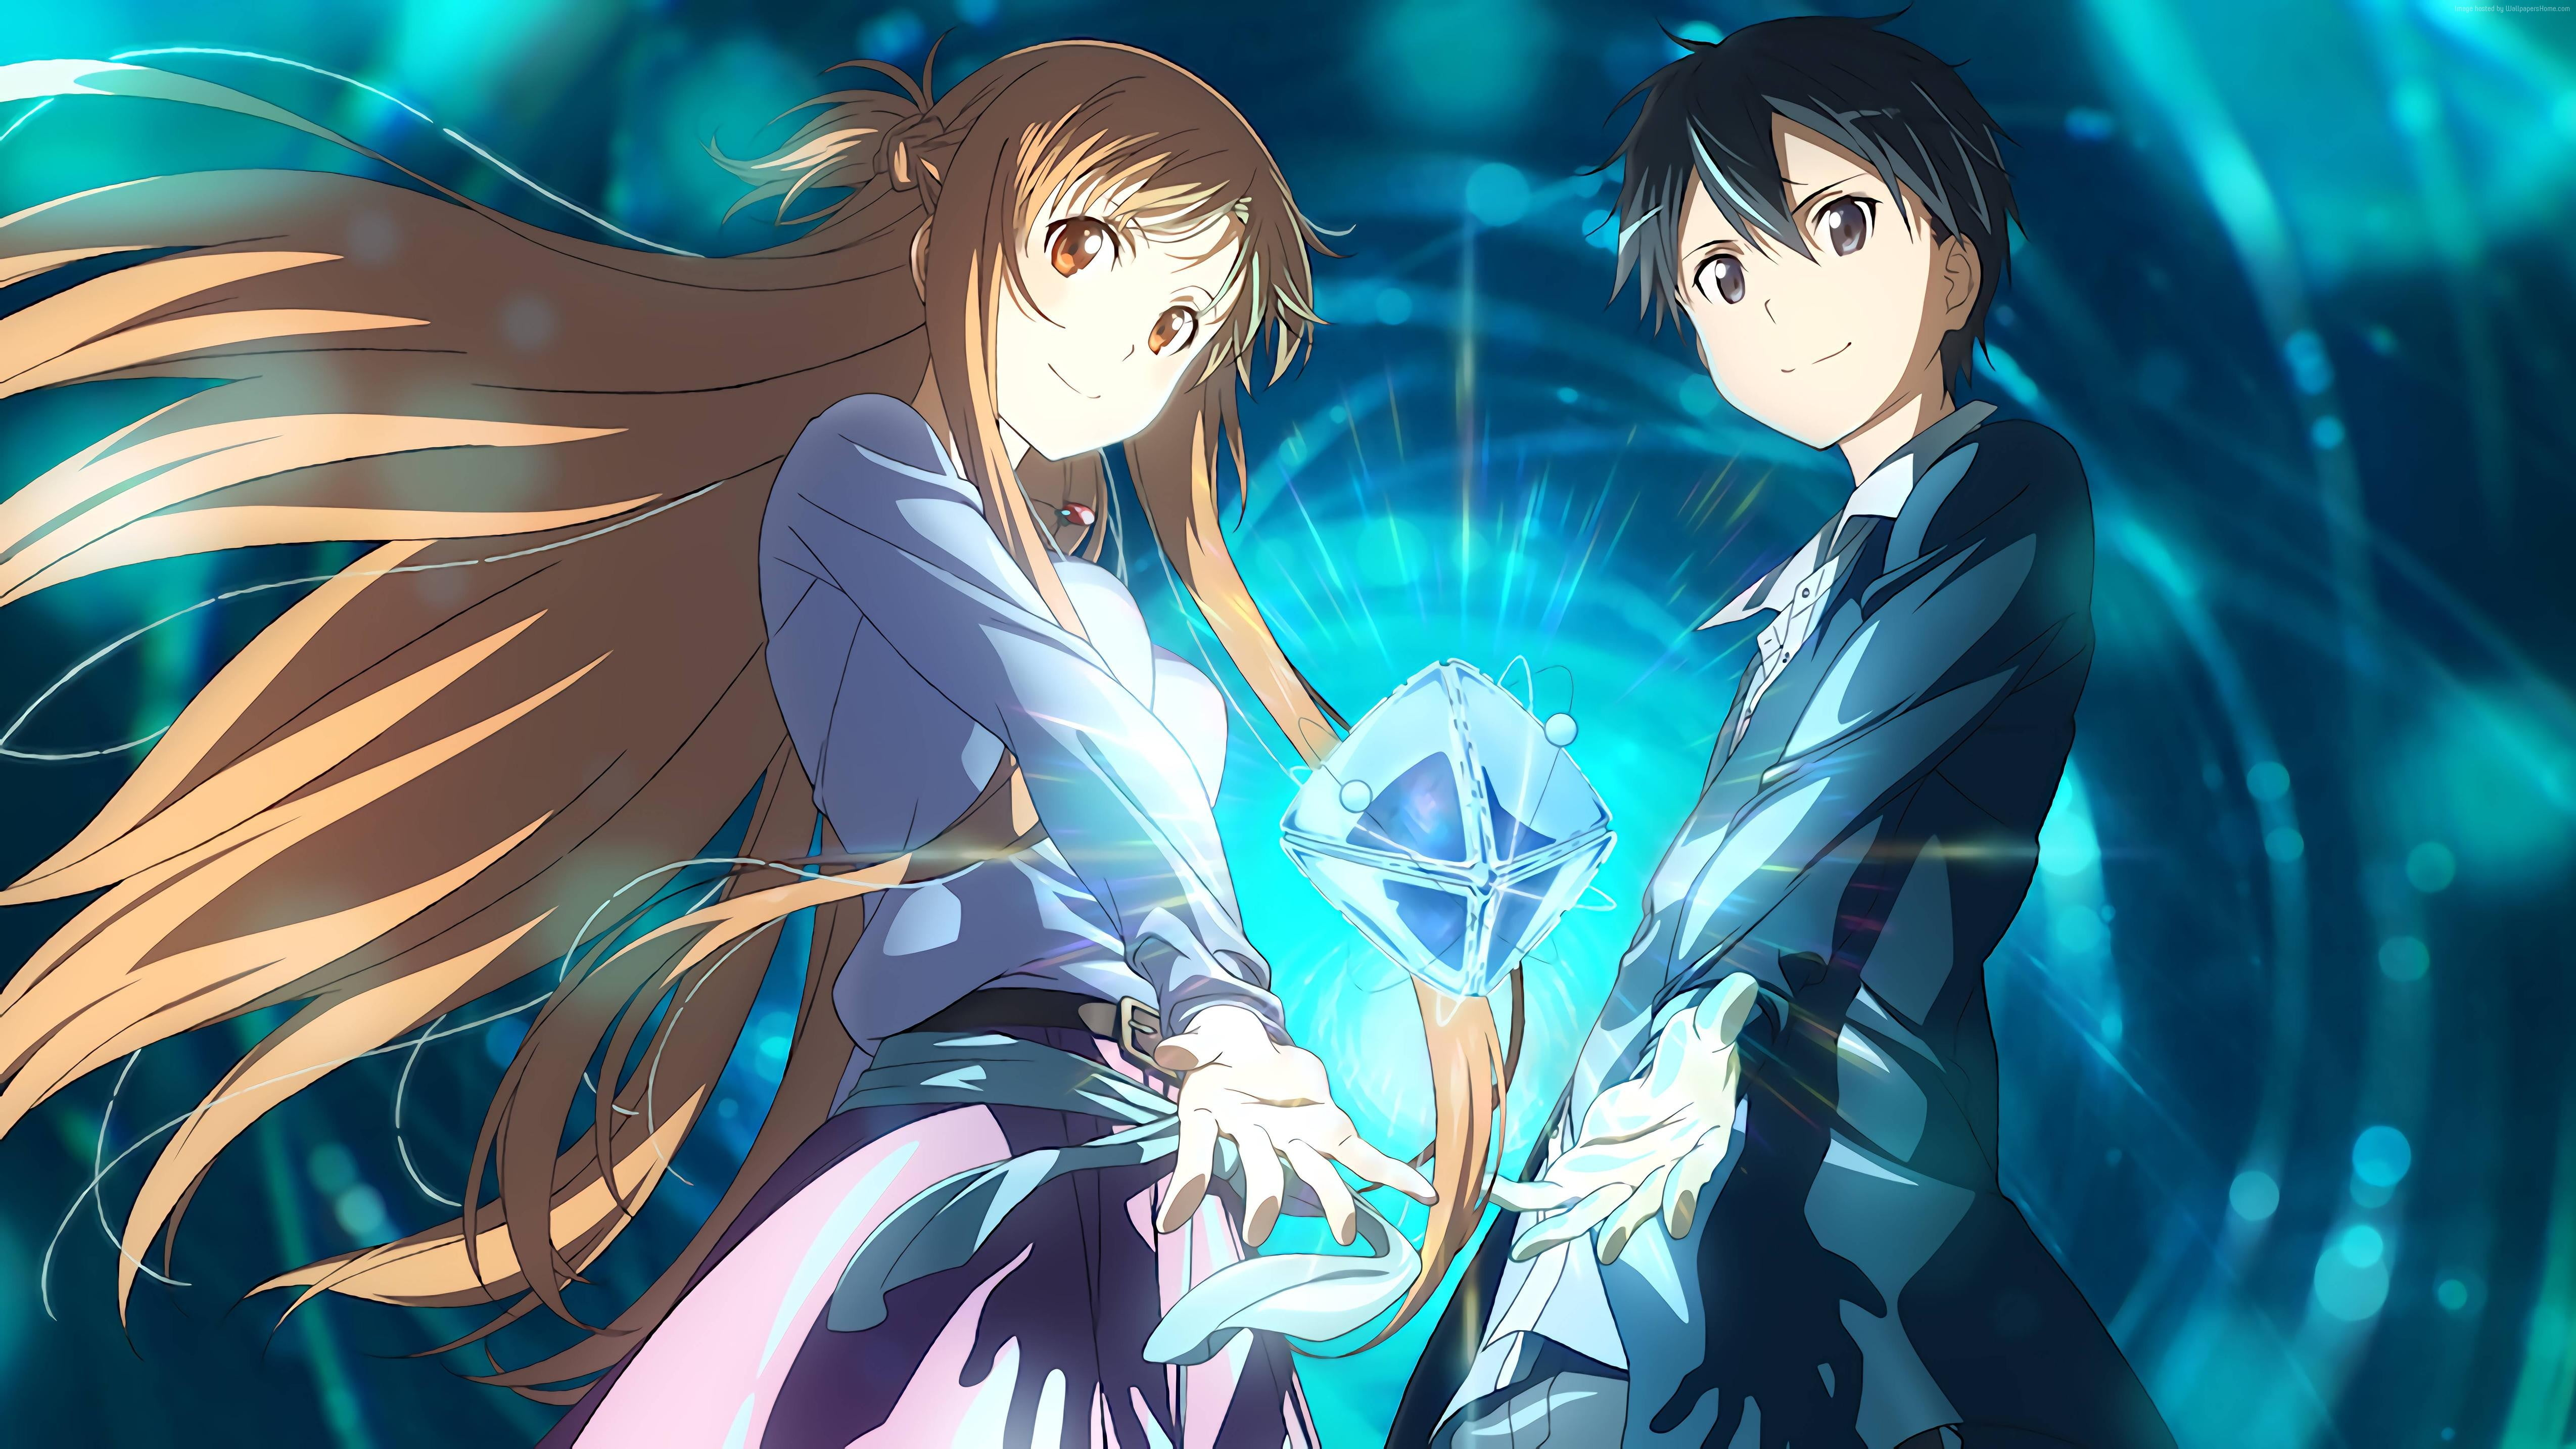 Foto Kirito Dan Asuna 24+] kirito and asuna wallpapers on wallpapersafari